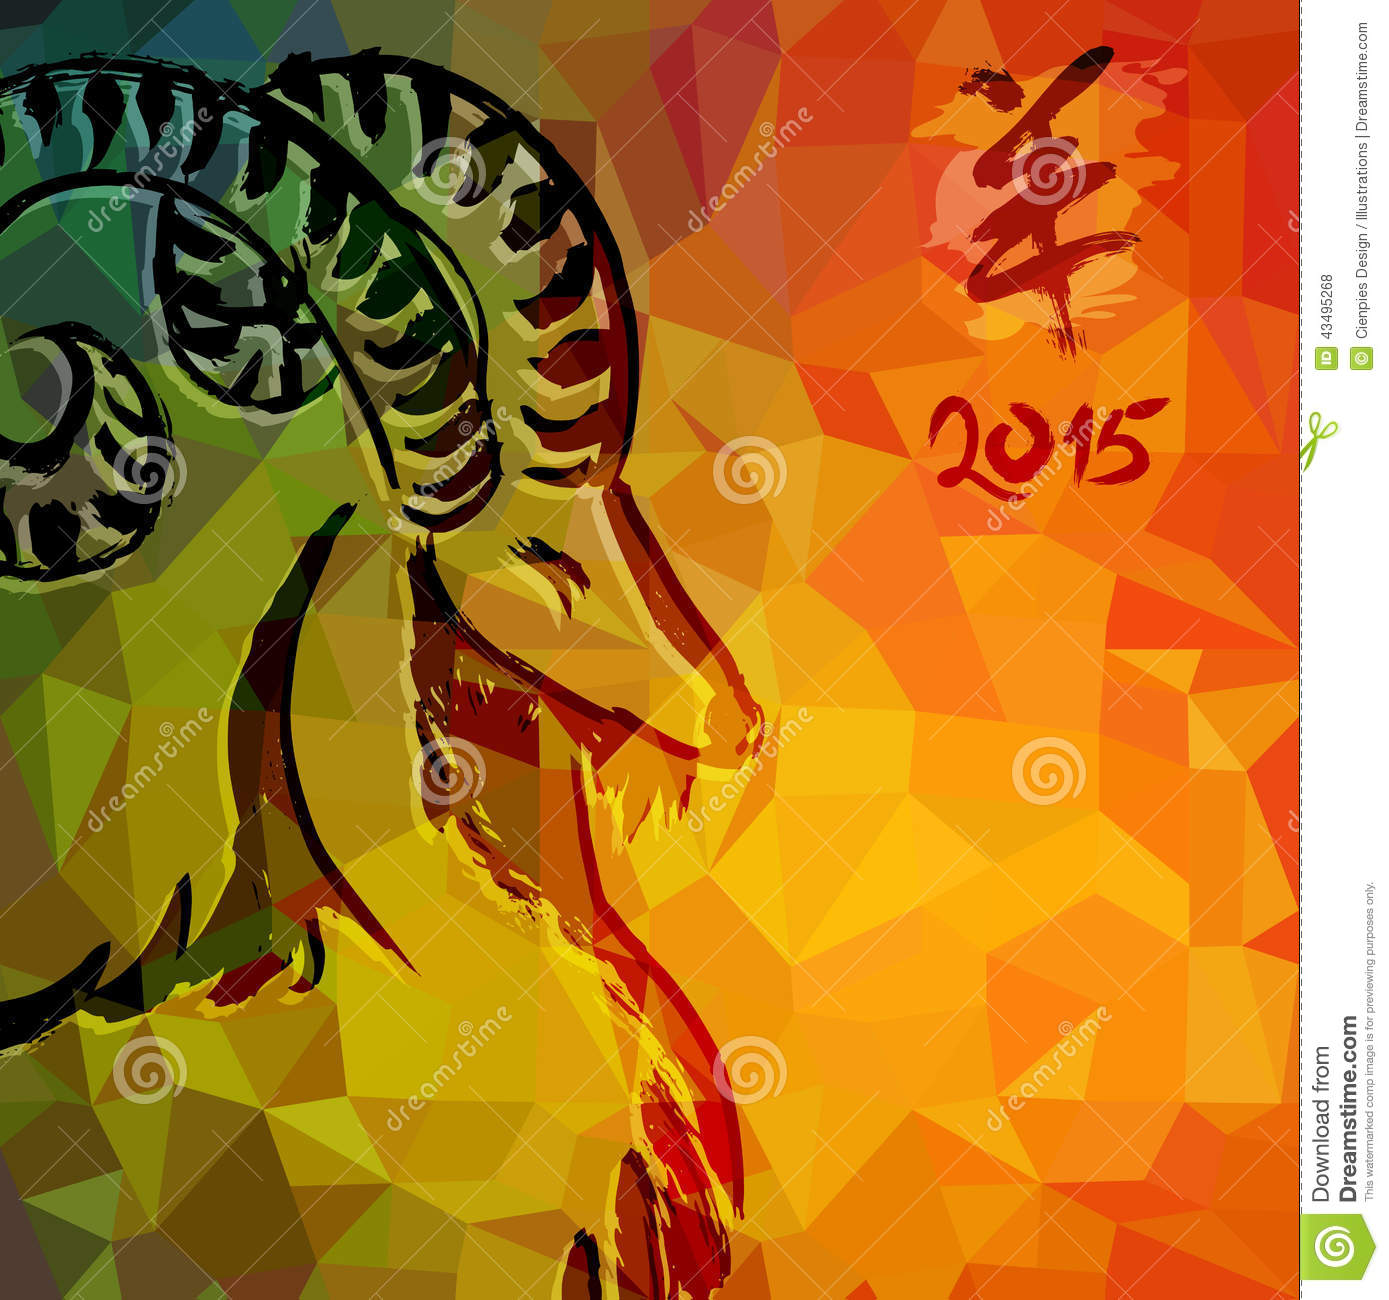 chinese new year of the goat 2015 fashion card